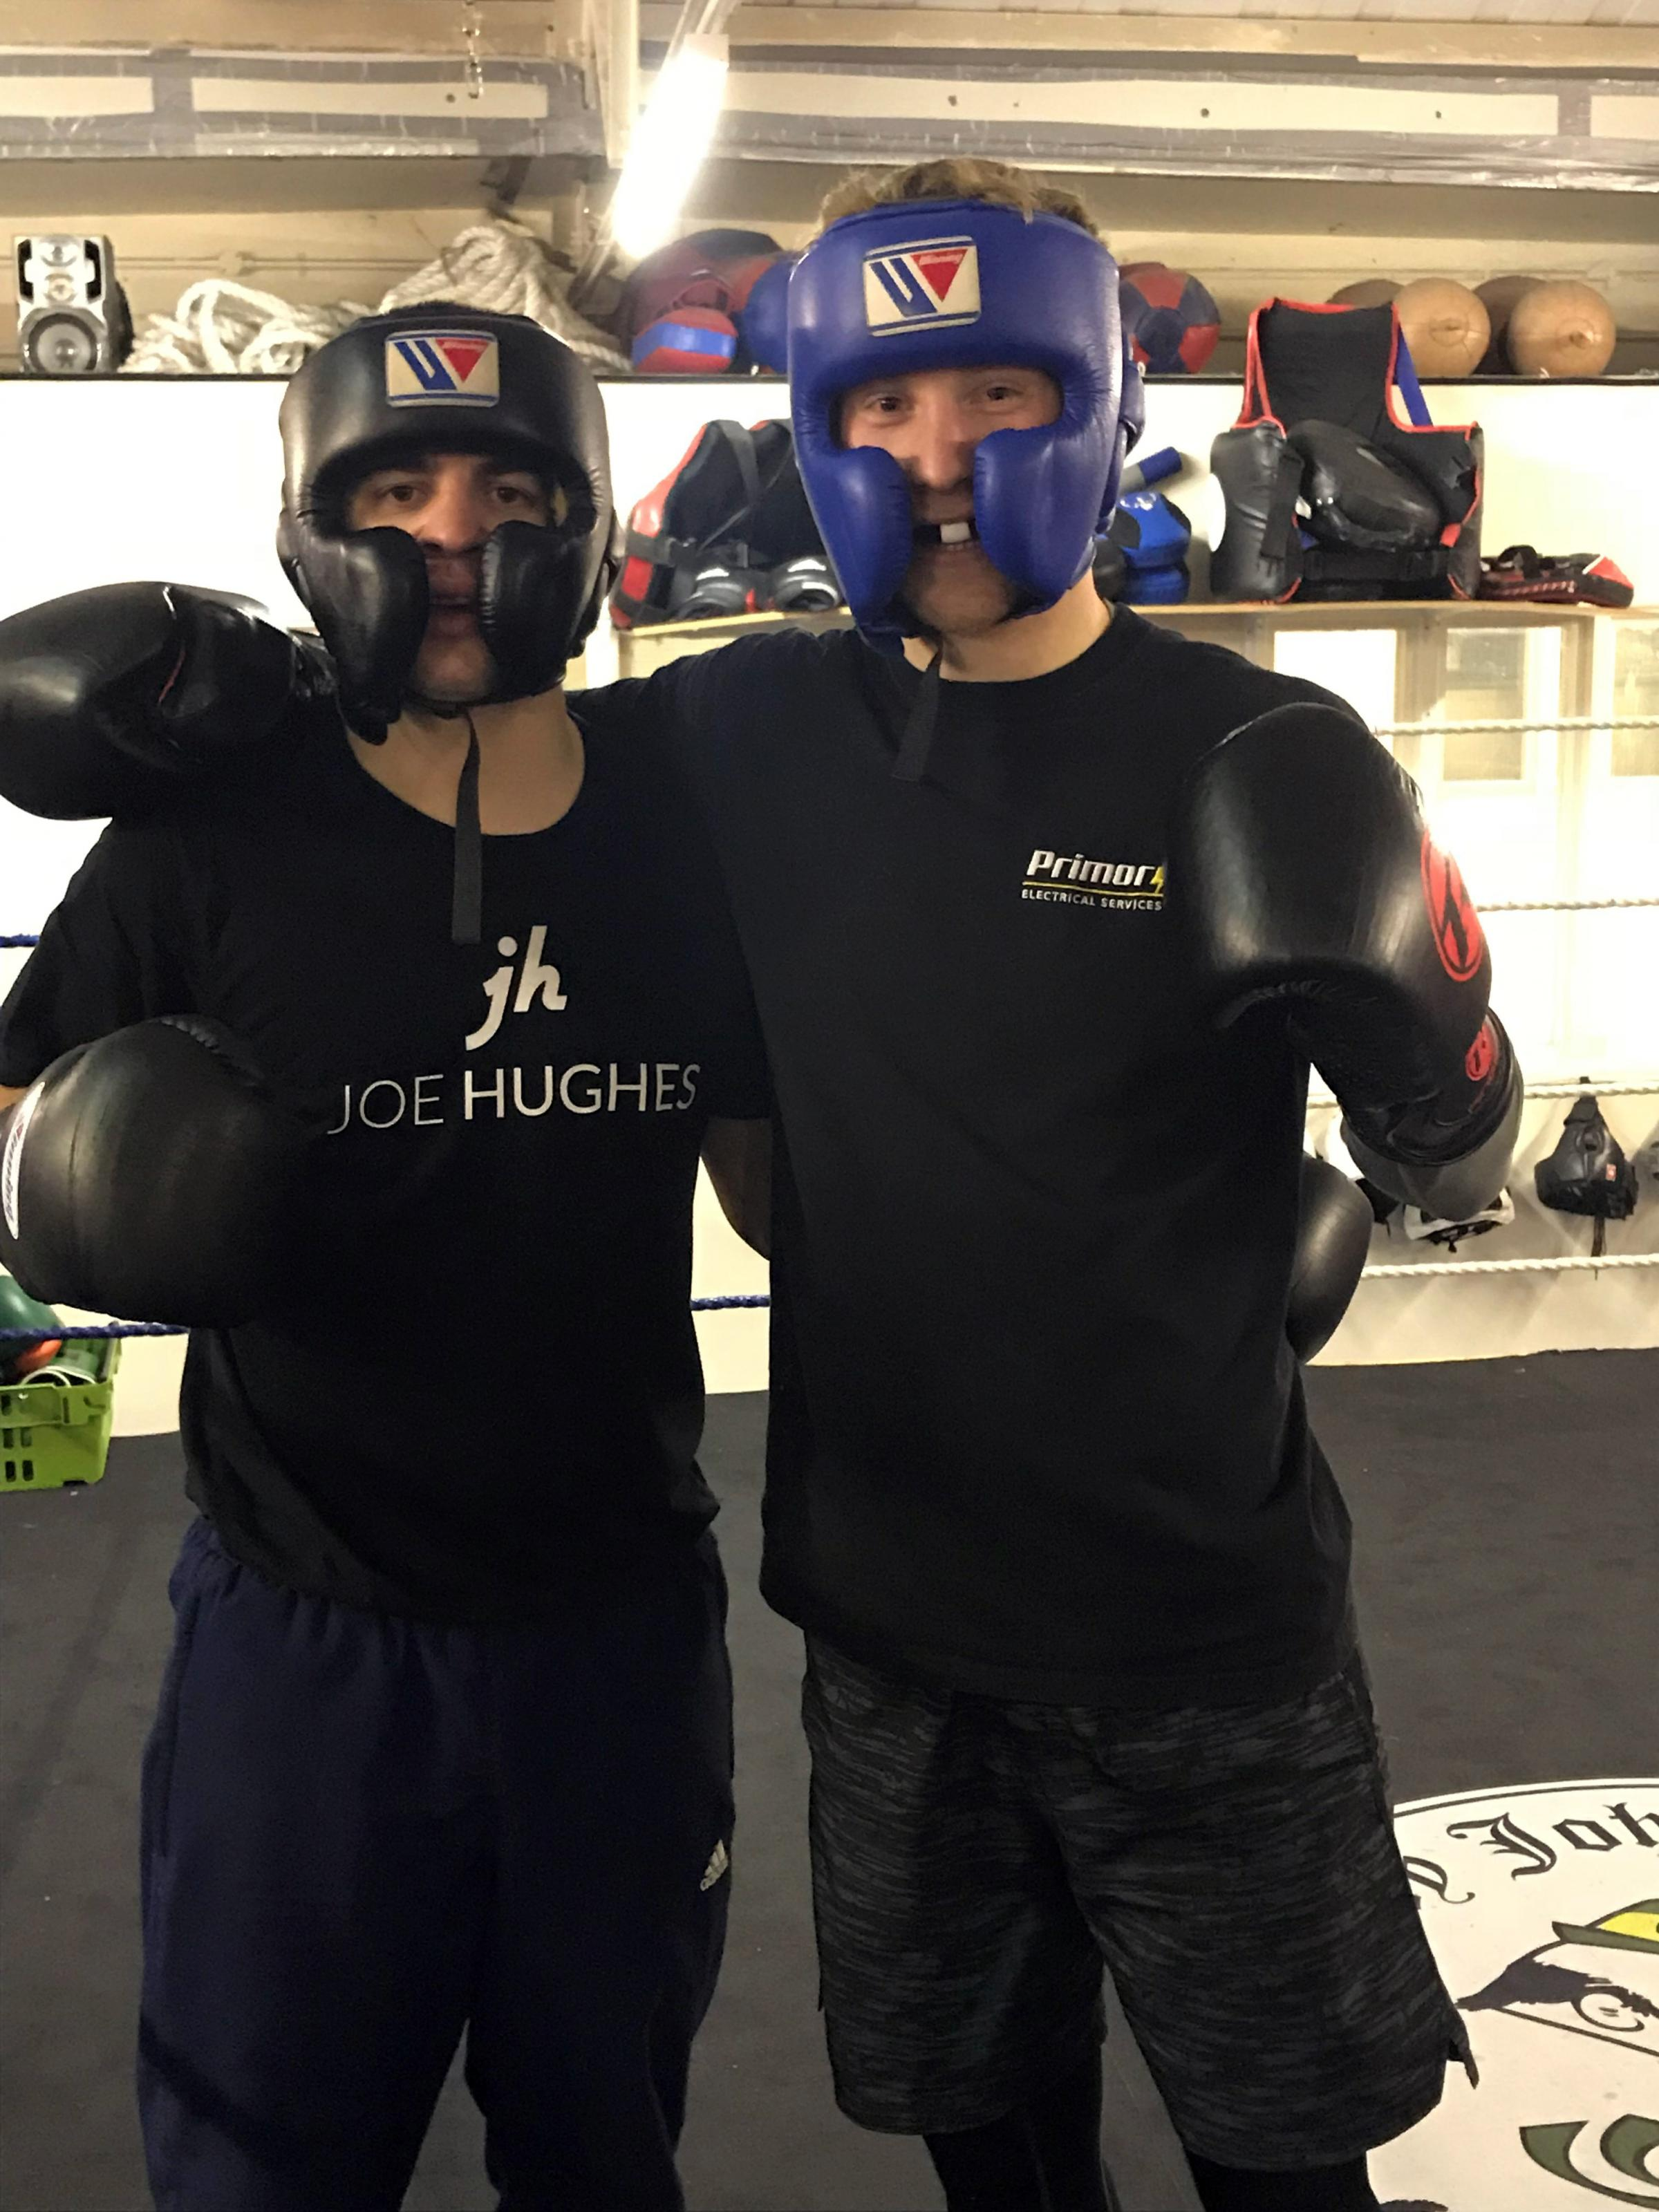 Malmesbury boxer Joe Hughes and sparring partner Kane Stewart, who he did the last 6 rounds with.